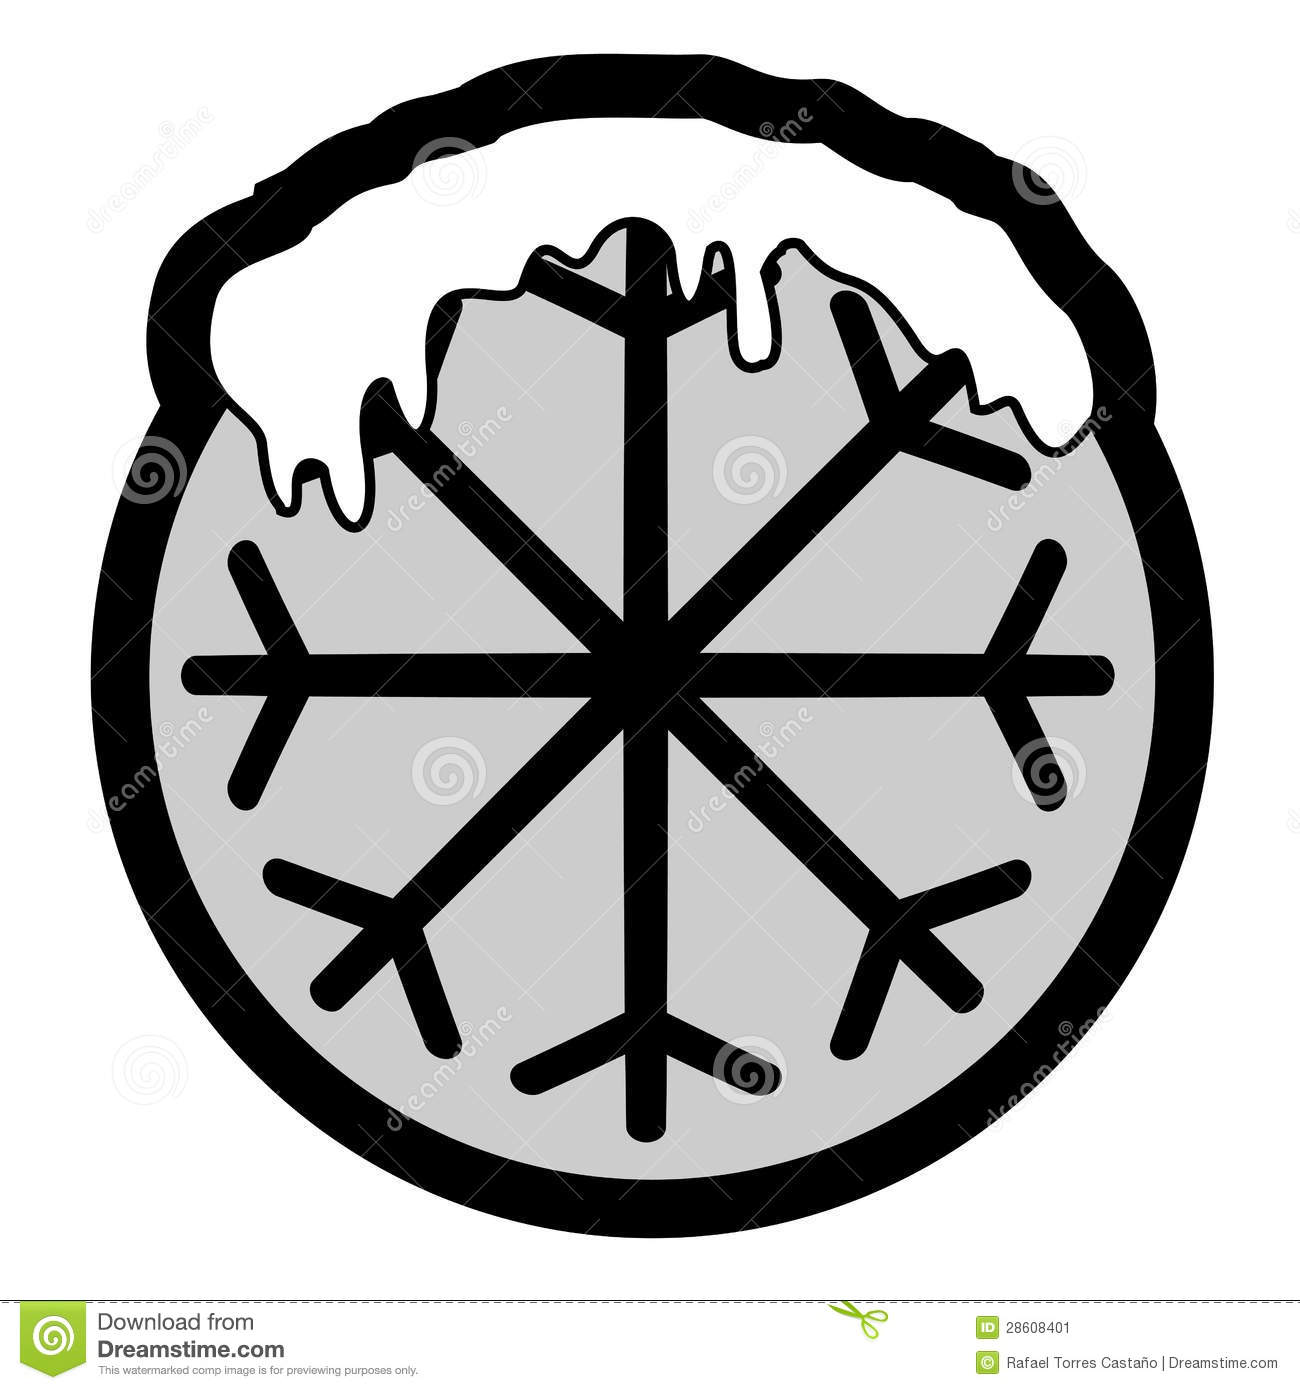 Ice Icon Stock Image  Image: 28608401